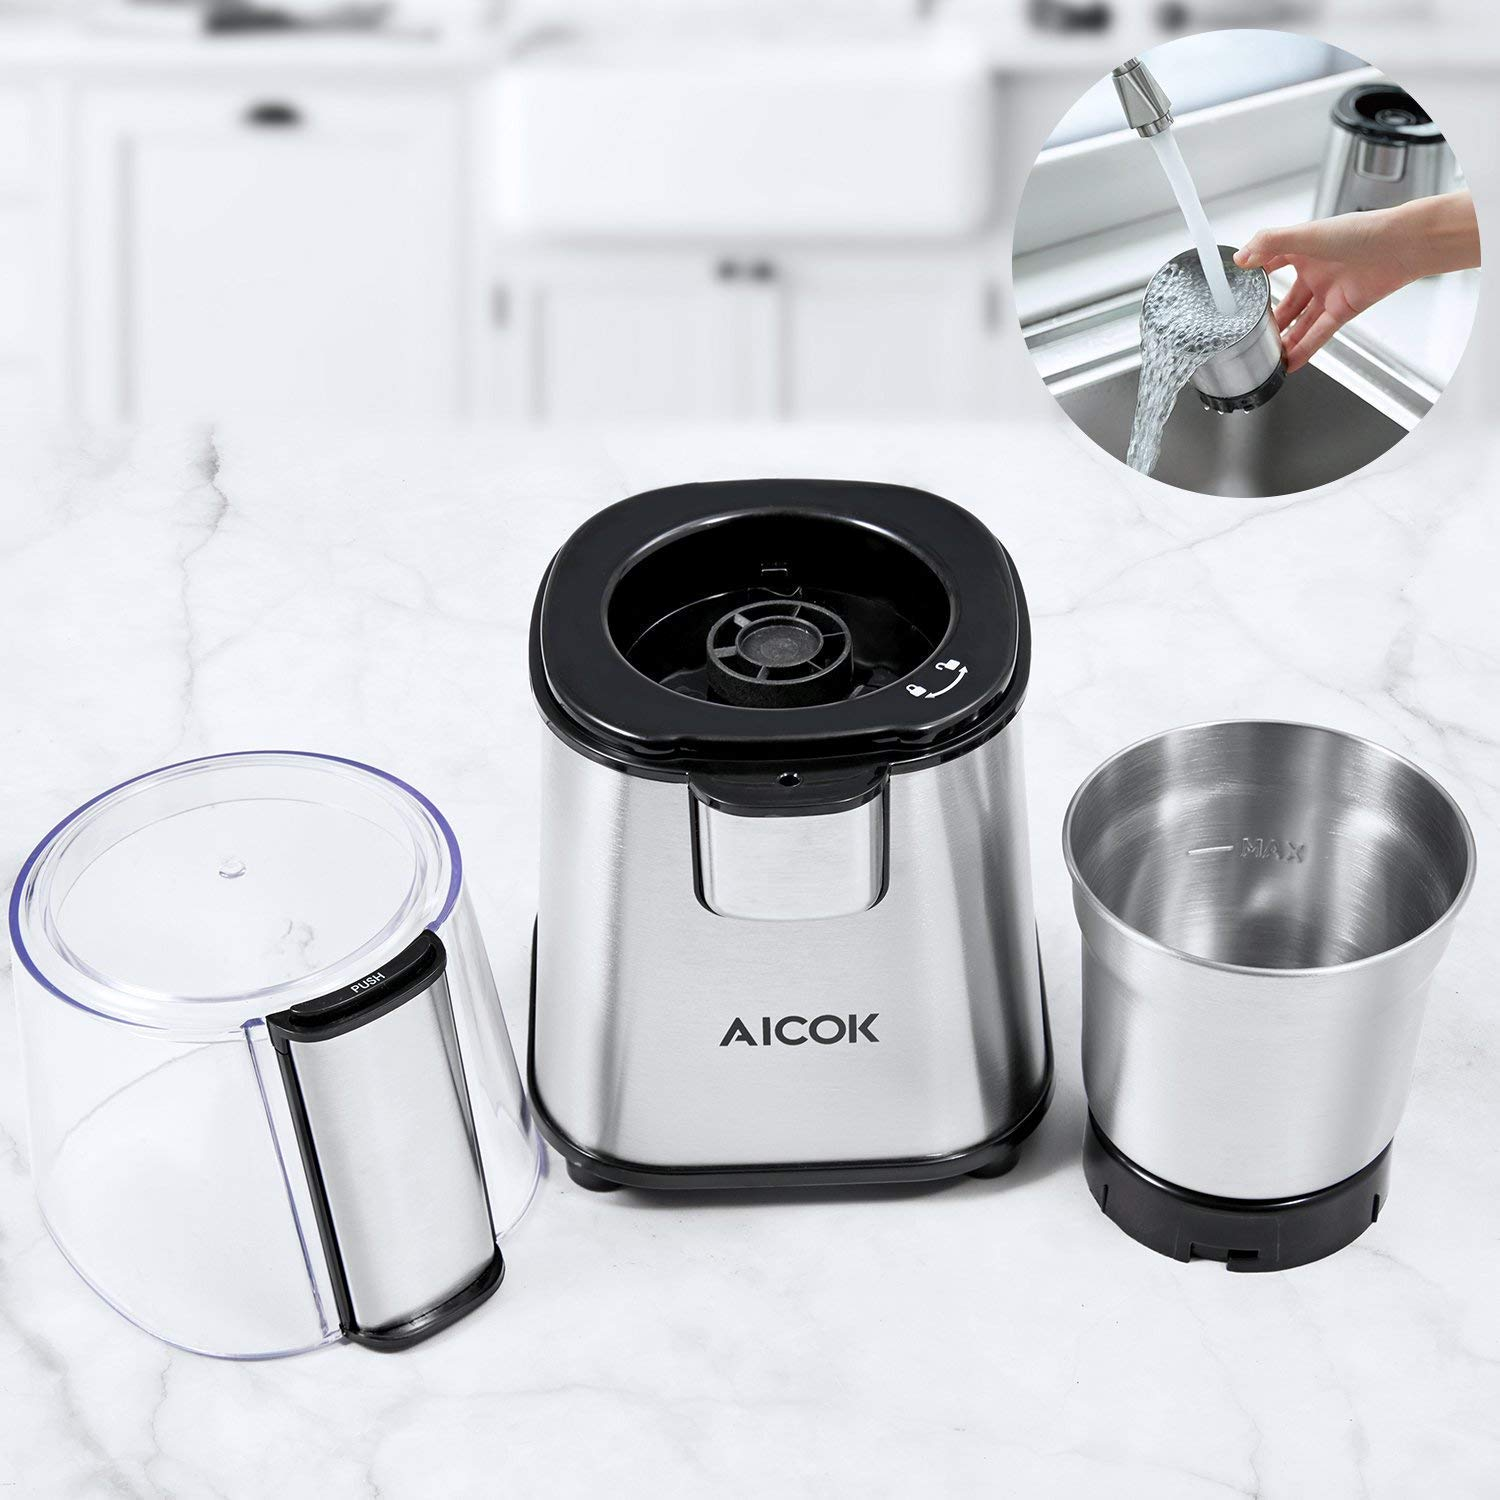 Spices Coffee Beans Grinder with Stainless Steel Blades for Fast Grinding Coffee Beans Nuts Grains Coffee Grinder AICOK Electric Coffee Grinder 12 Cup